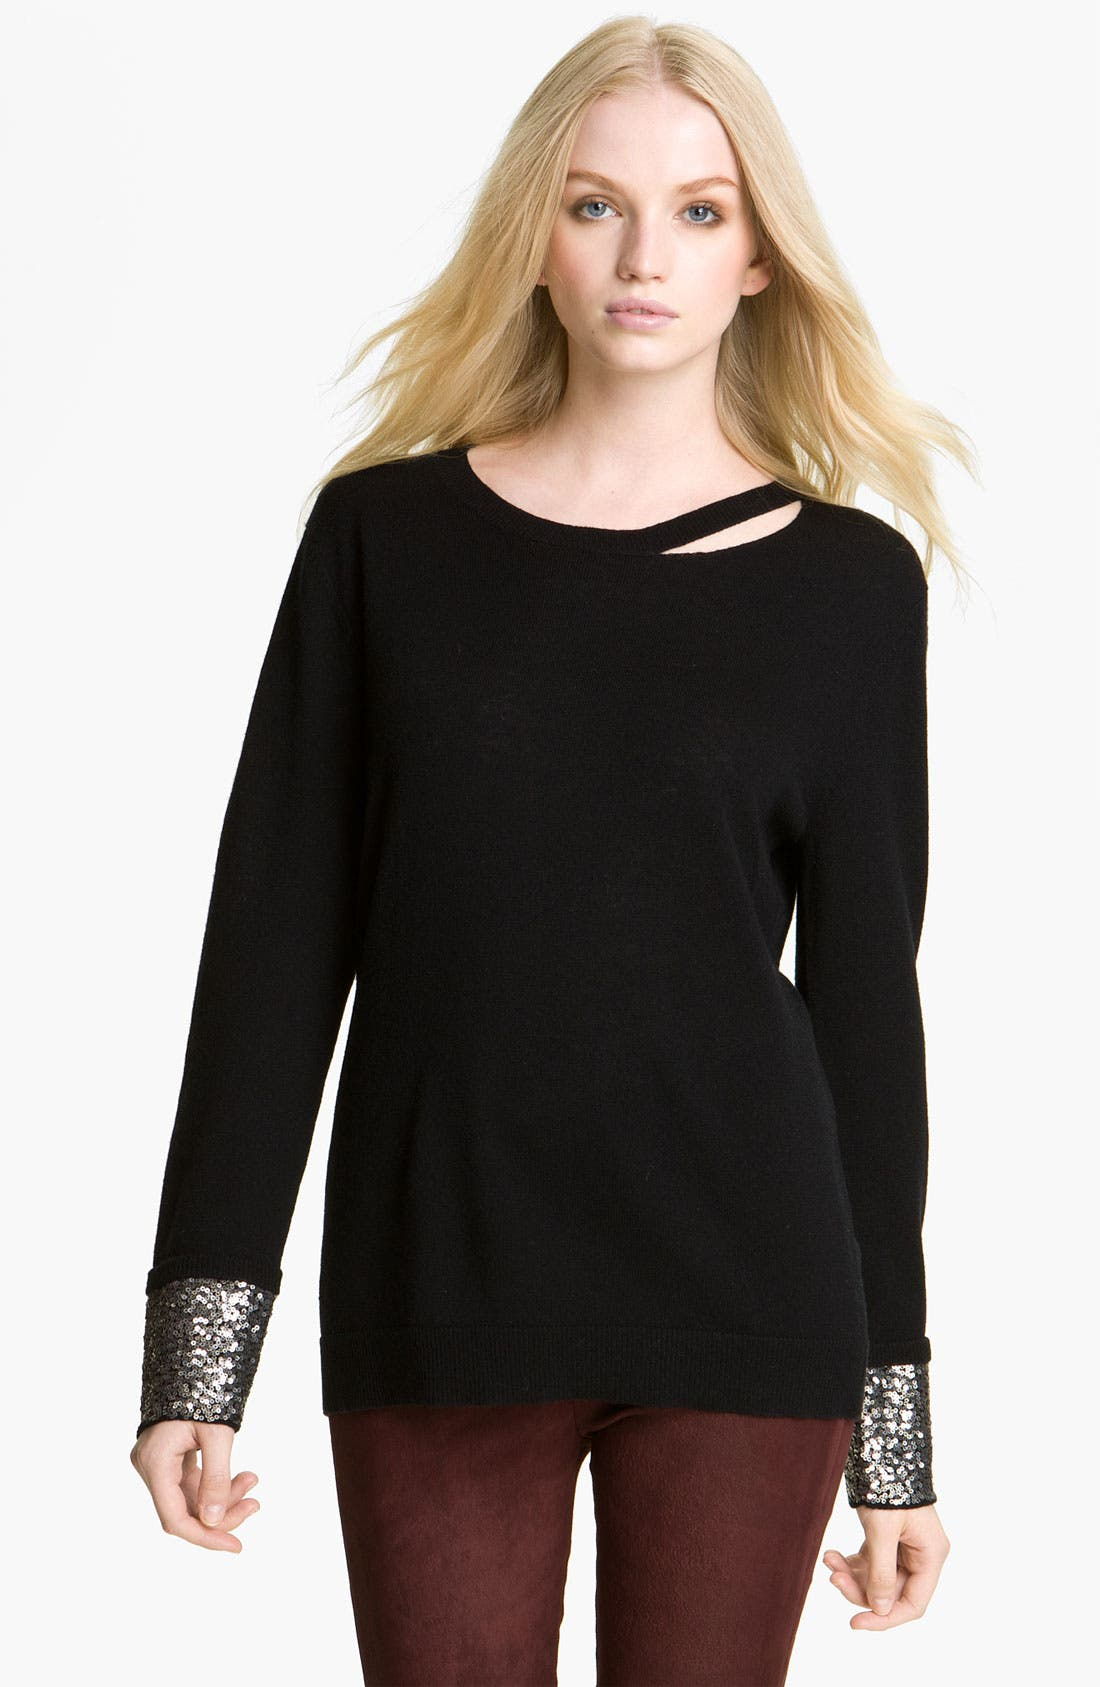 Alternate Image 1 Selected - Zadig & Voltaire 'Cygne' Sequin Cuff Sweater